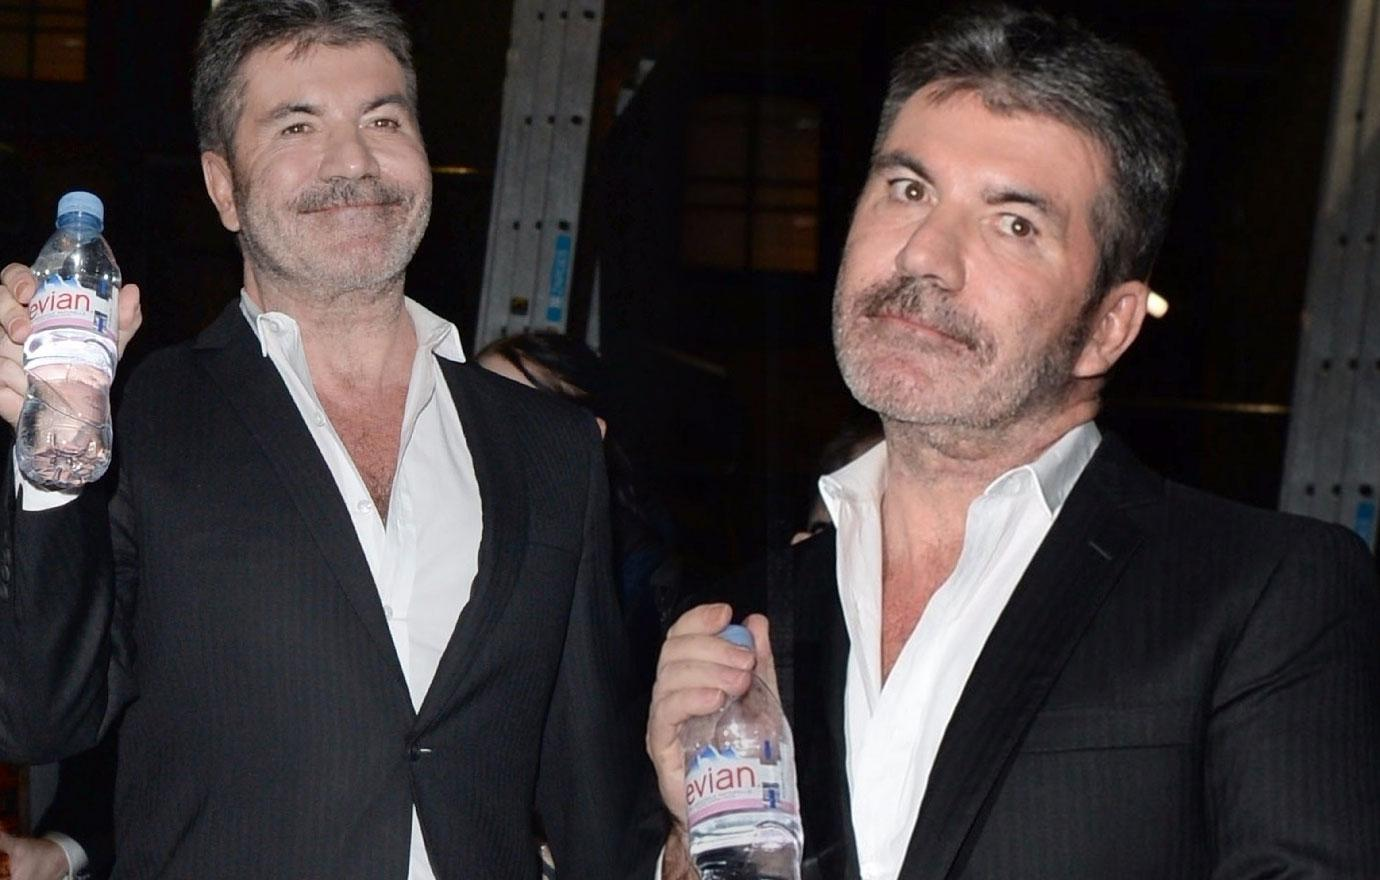 Simon Cowell Steps Out After Health Scare Fall